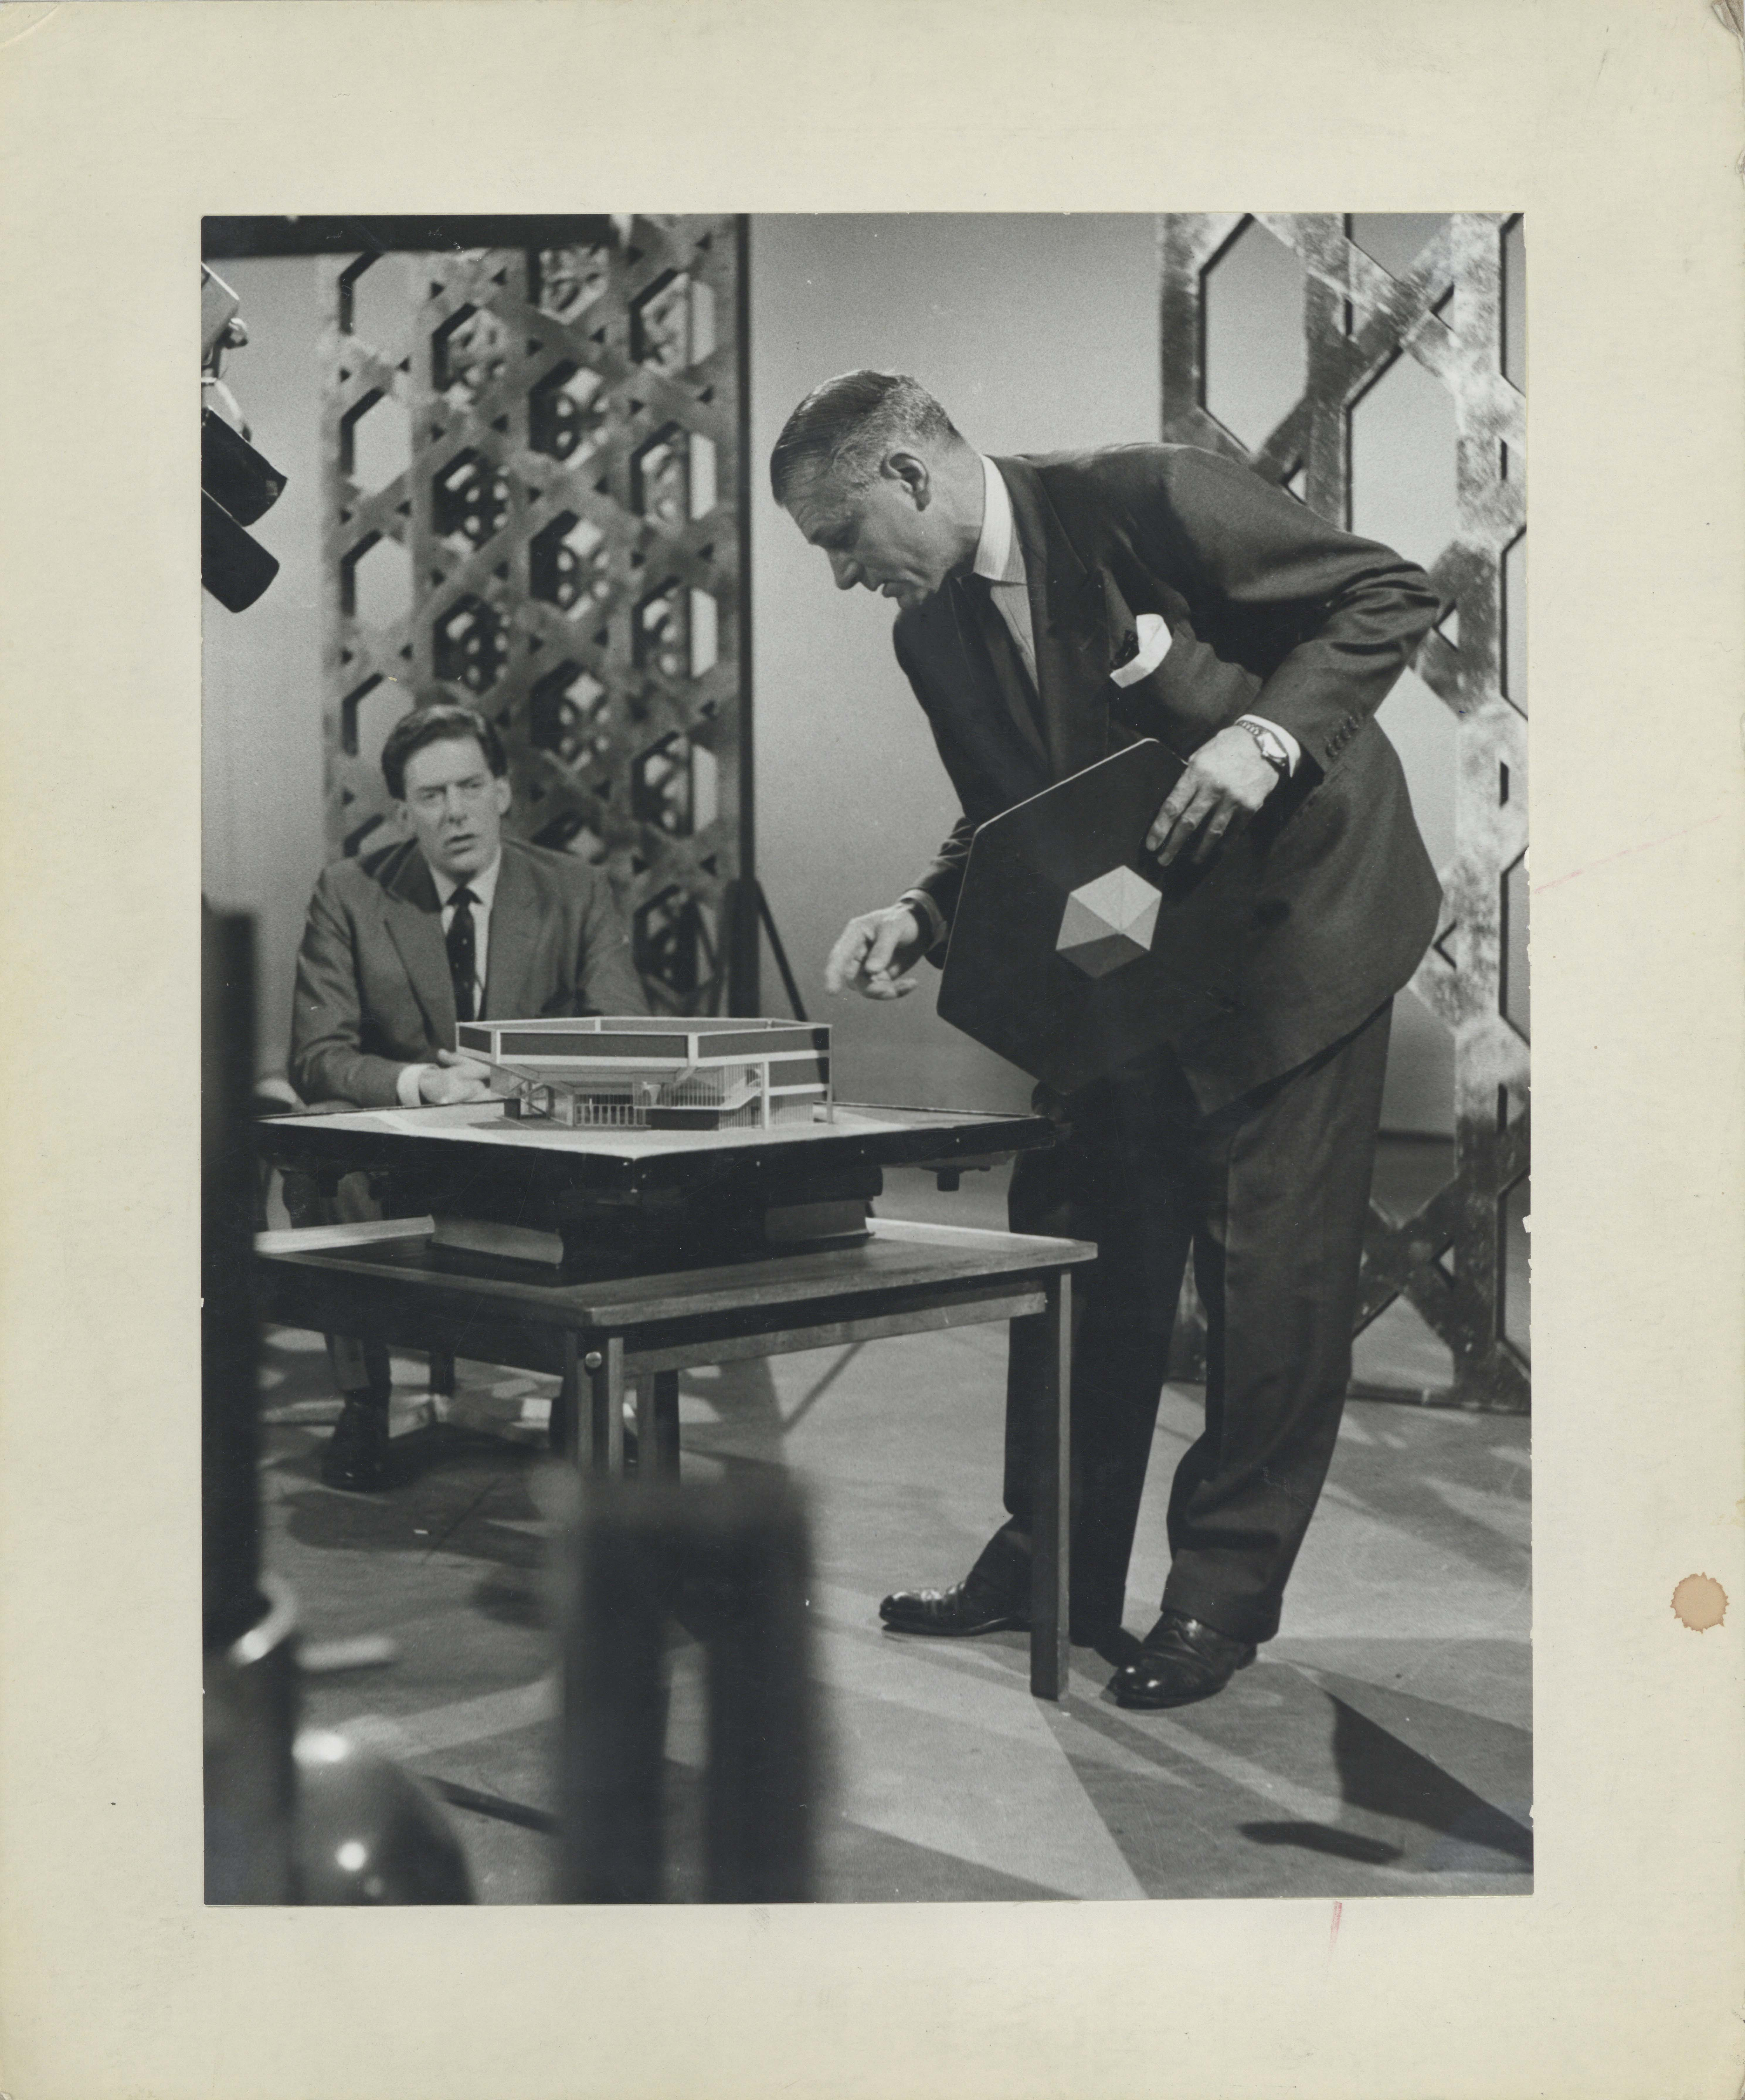 Photograph Architect Model Box - Photographer unknown - Date unknown - Laurence Olivier - Box 69 CFT WSRO H24.3xW19cm